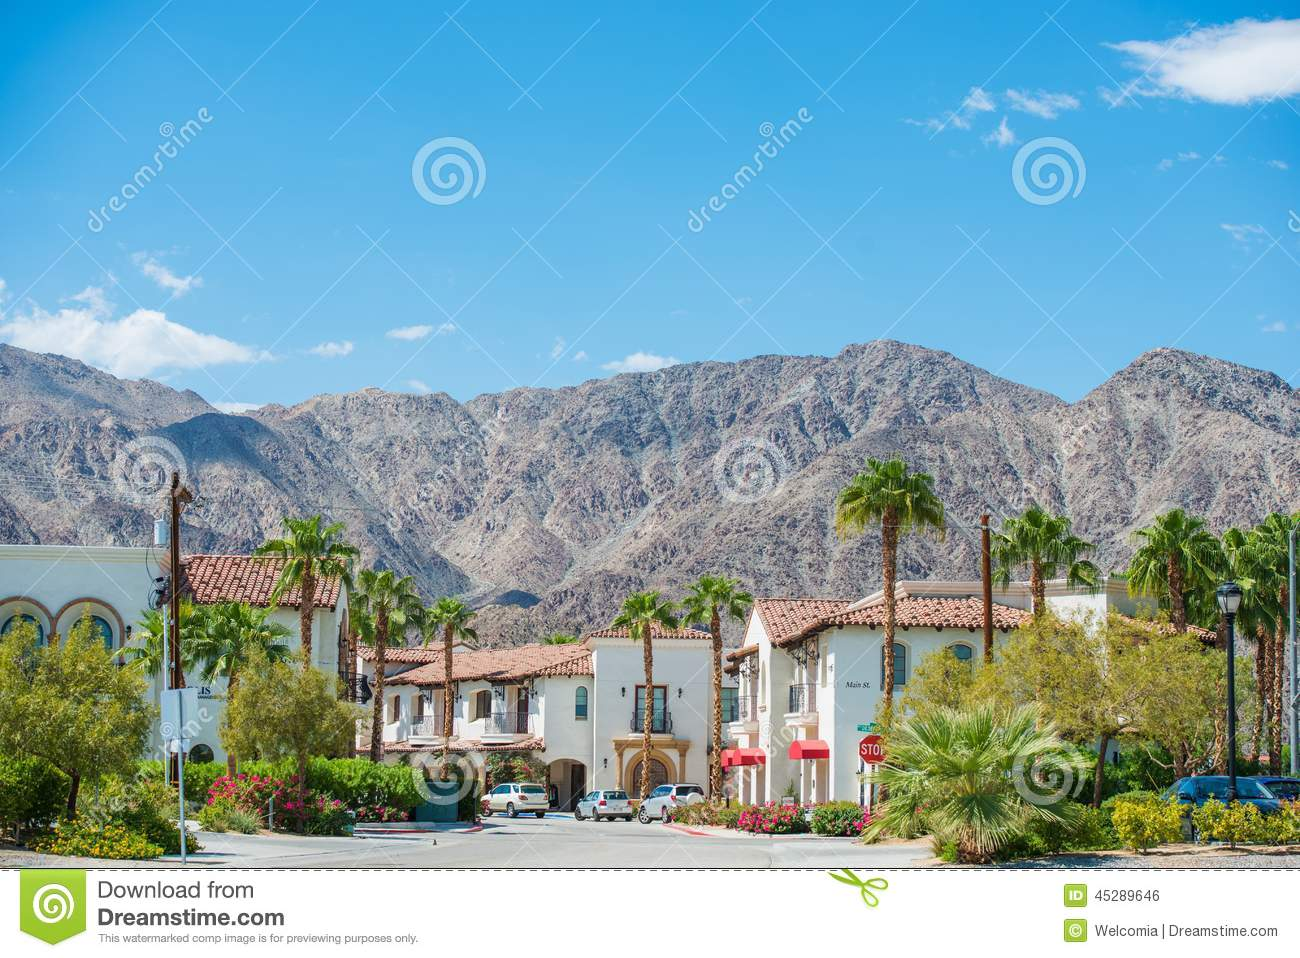 La Quinta (CA) United States  City new picture : ... La Quinta with Mountain View, United States. La Quinta, Riverside